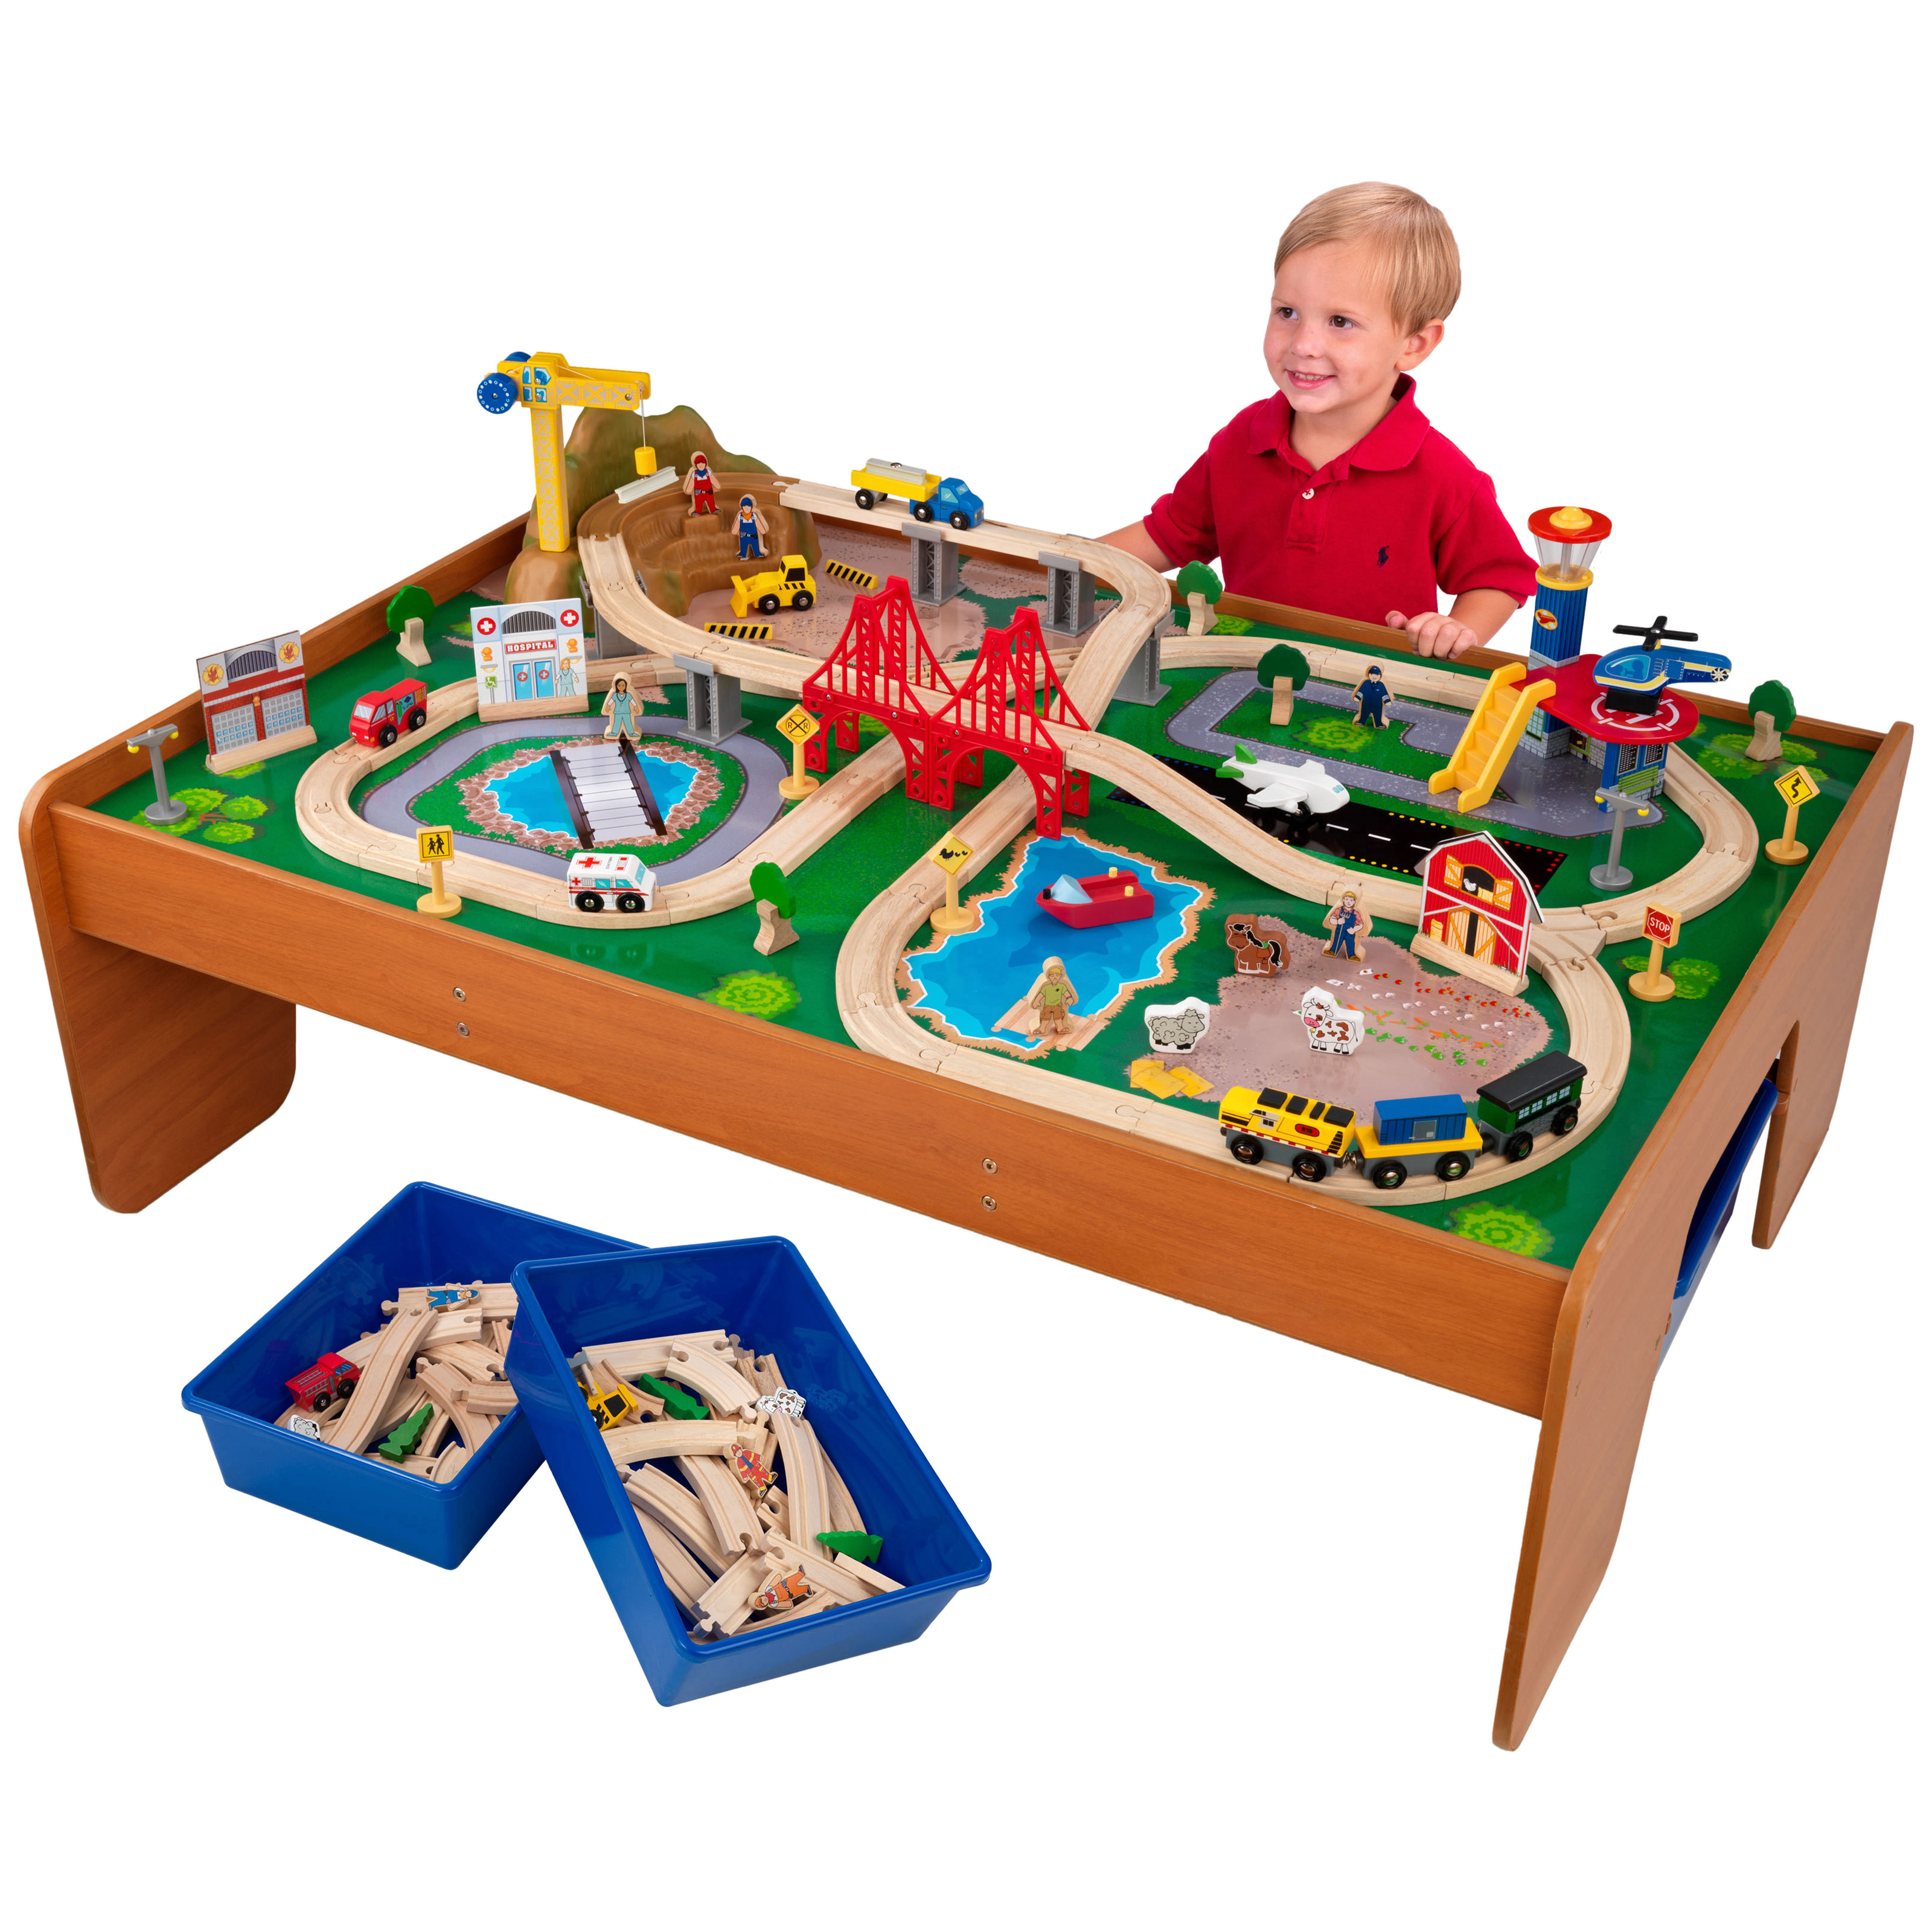 sc 1 st  Hayneedle & KidKraft Ride Around Town Train Table and Train Set - 17836 | Hayneedle